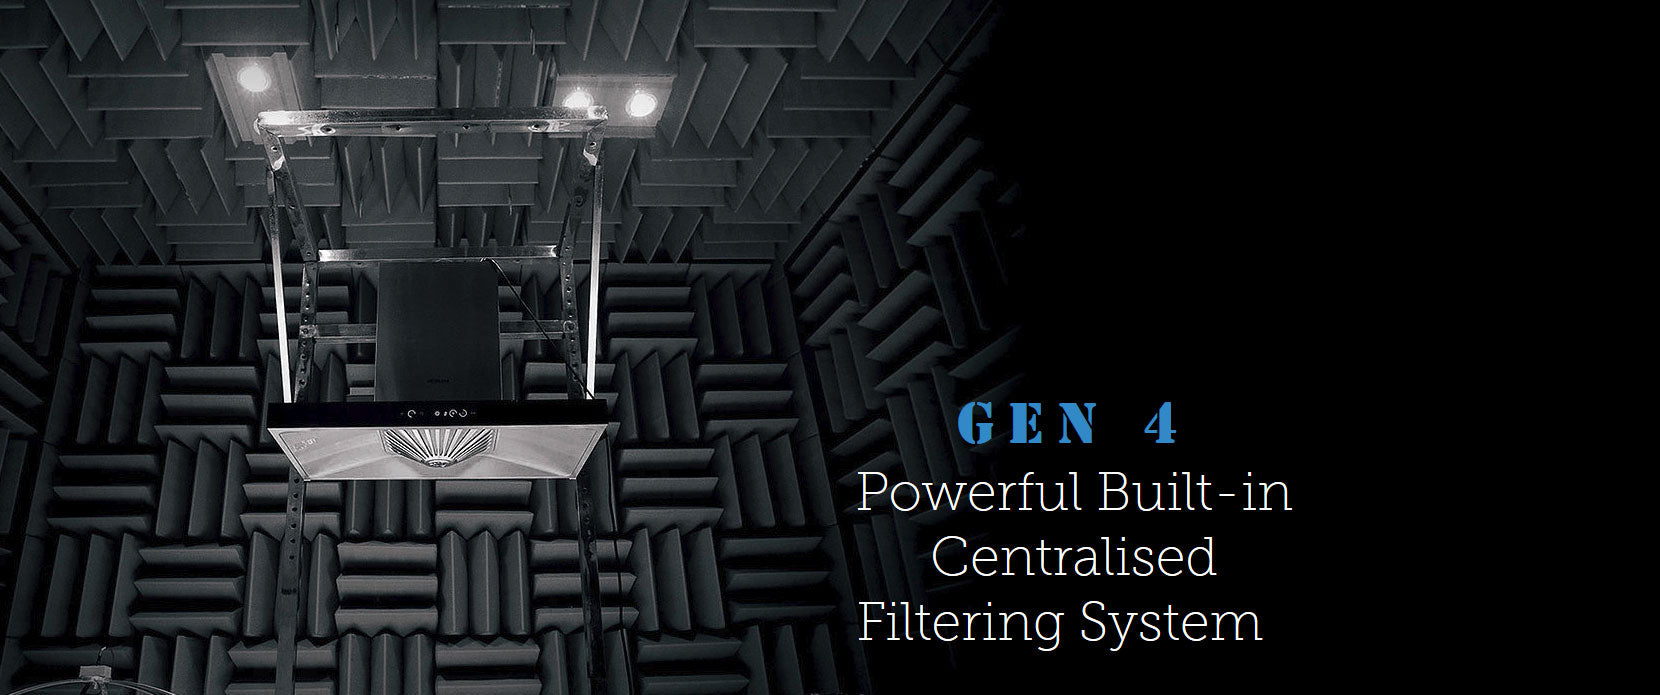 Gen 4 Powerful Built-in Centralised Filtering System